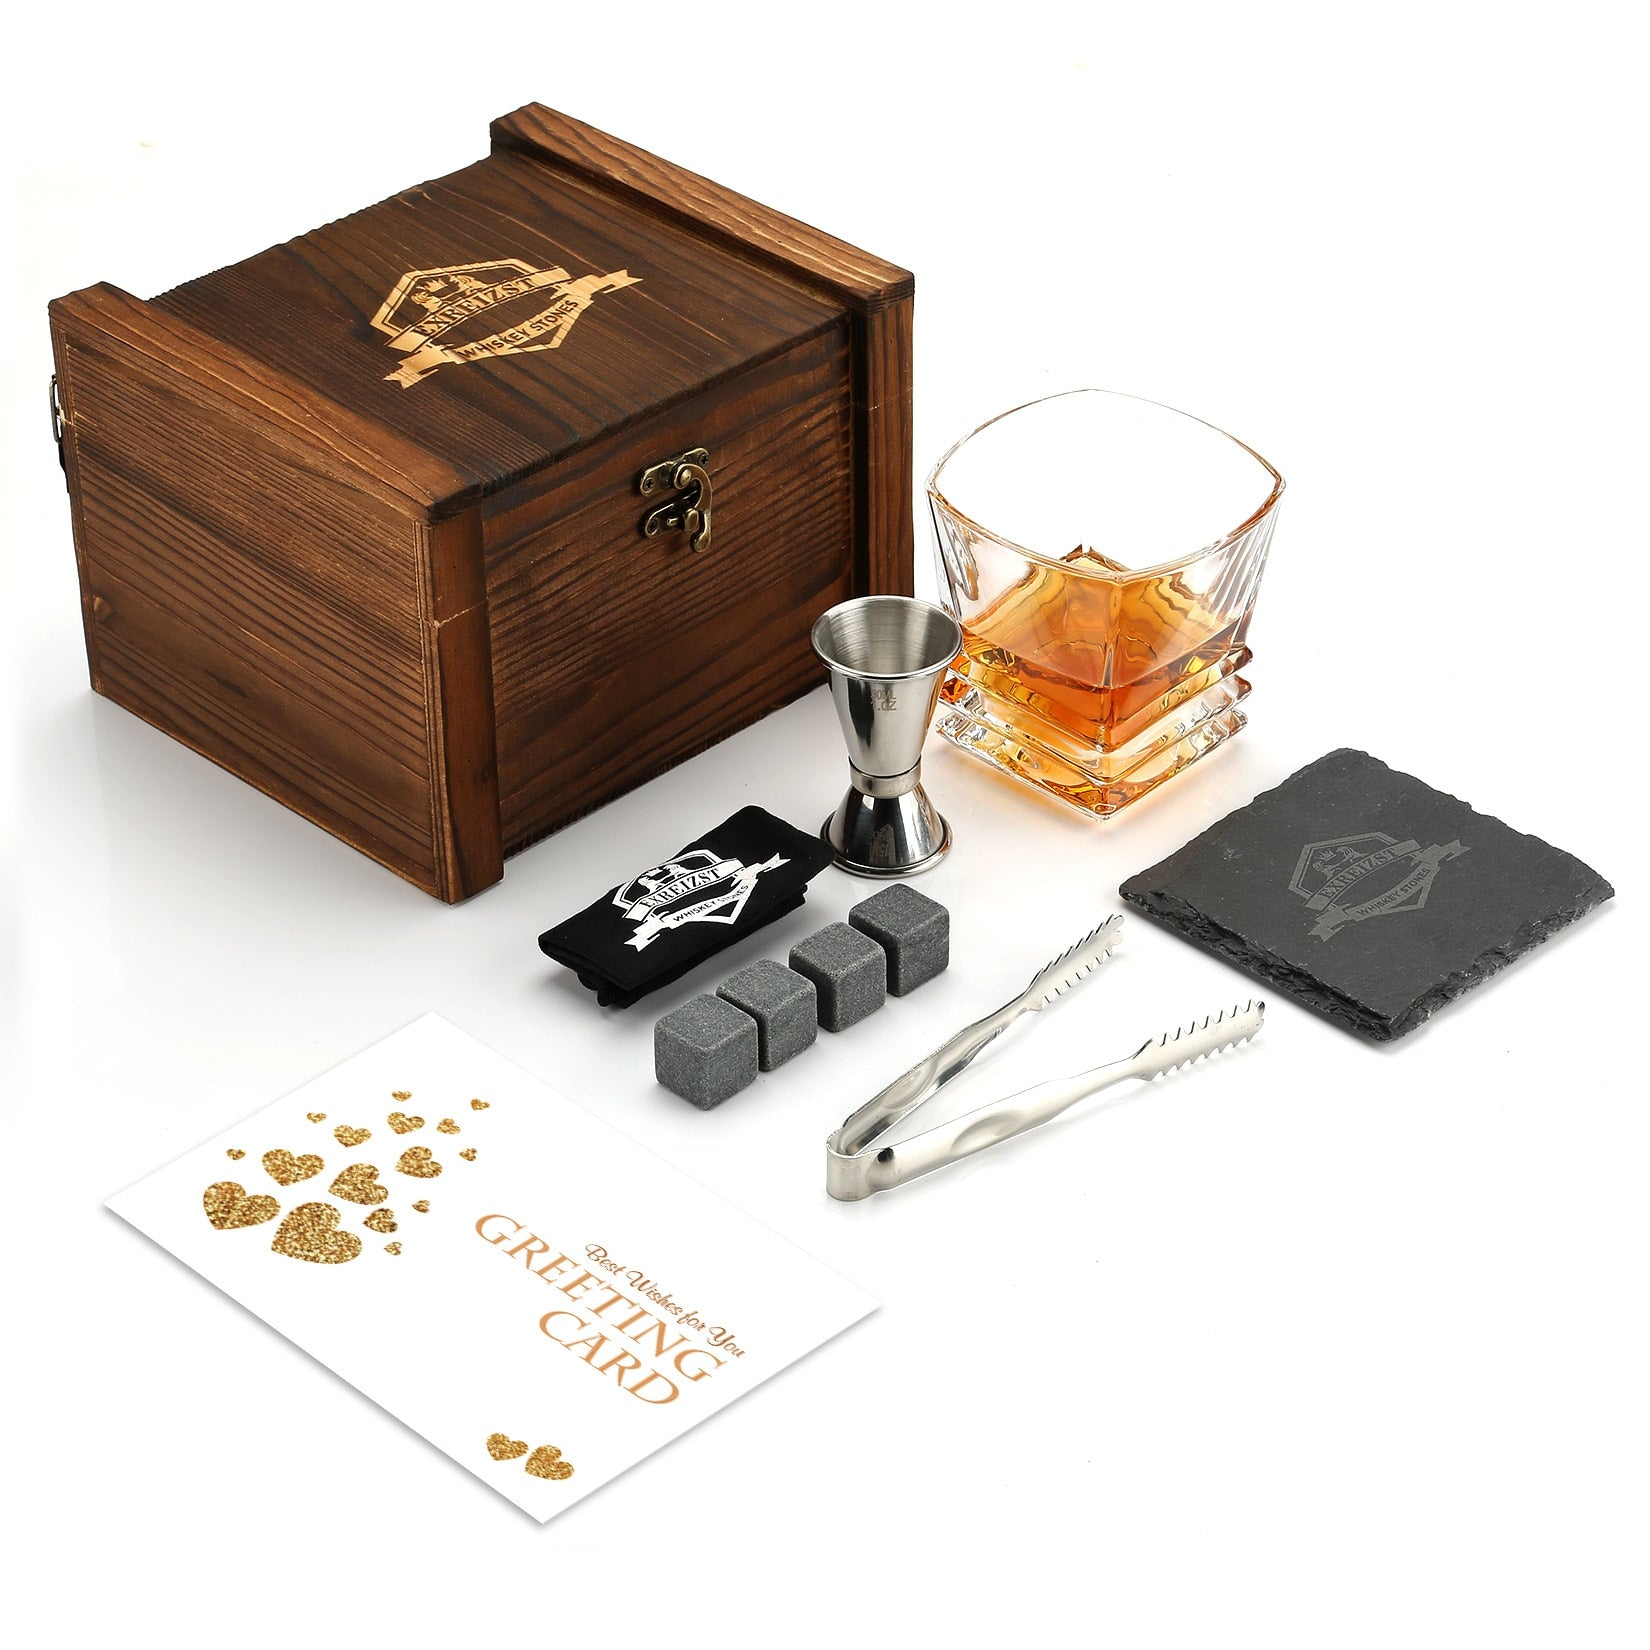 Whiskey Stones and Glass Gift Box Set - Granite Chilling Rocks, Best Drinking for Men Dad Husband Birthday Party Holiday Present